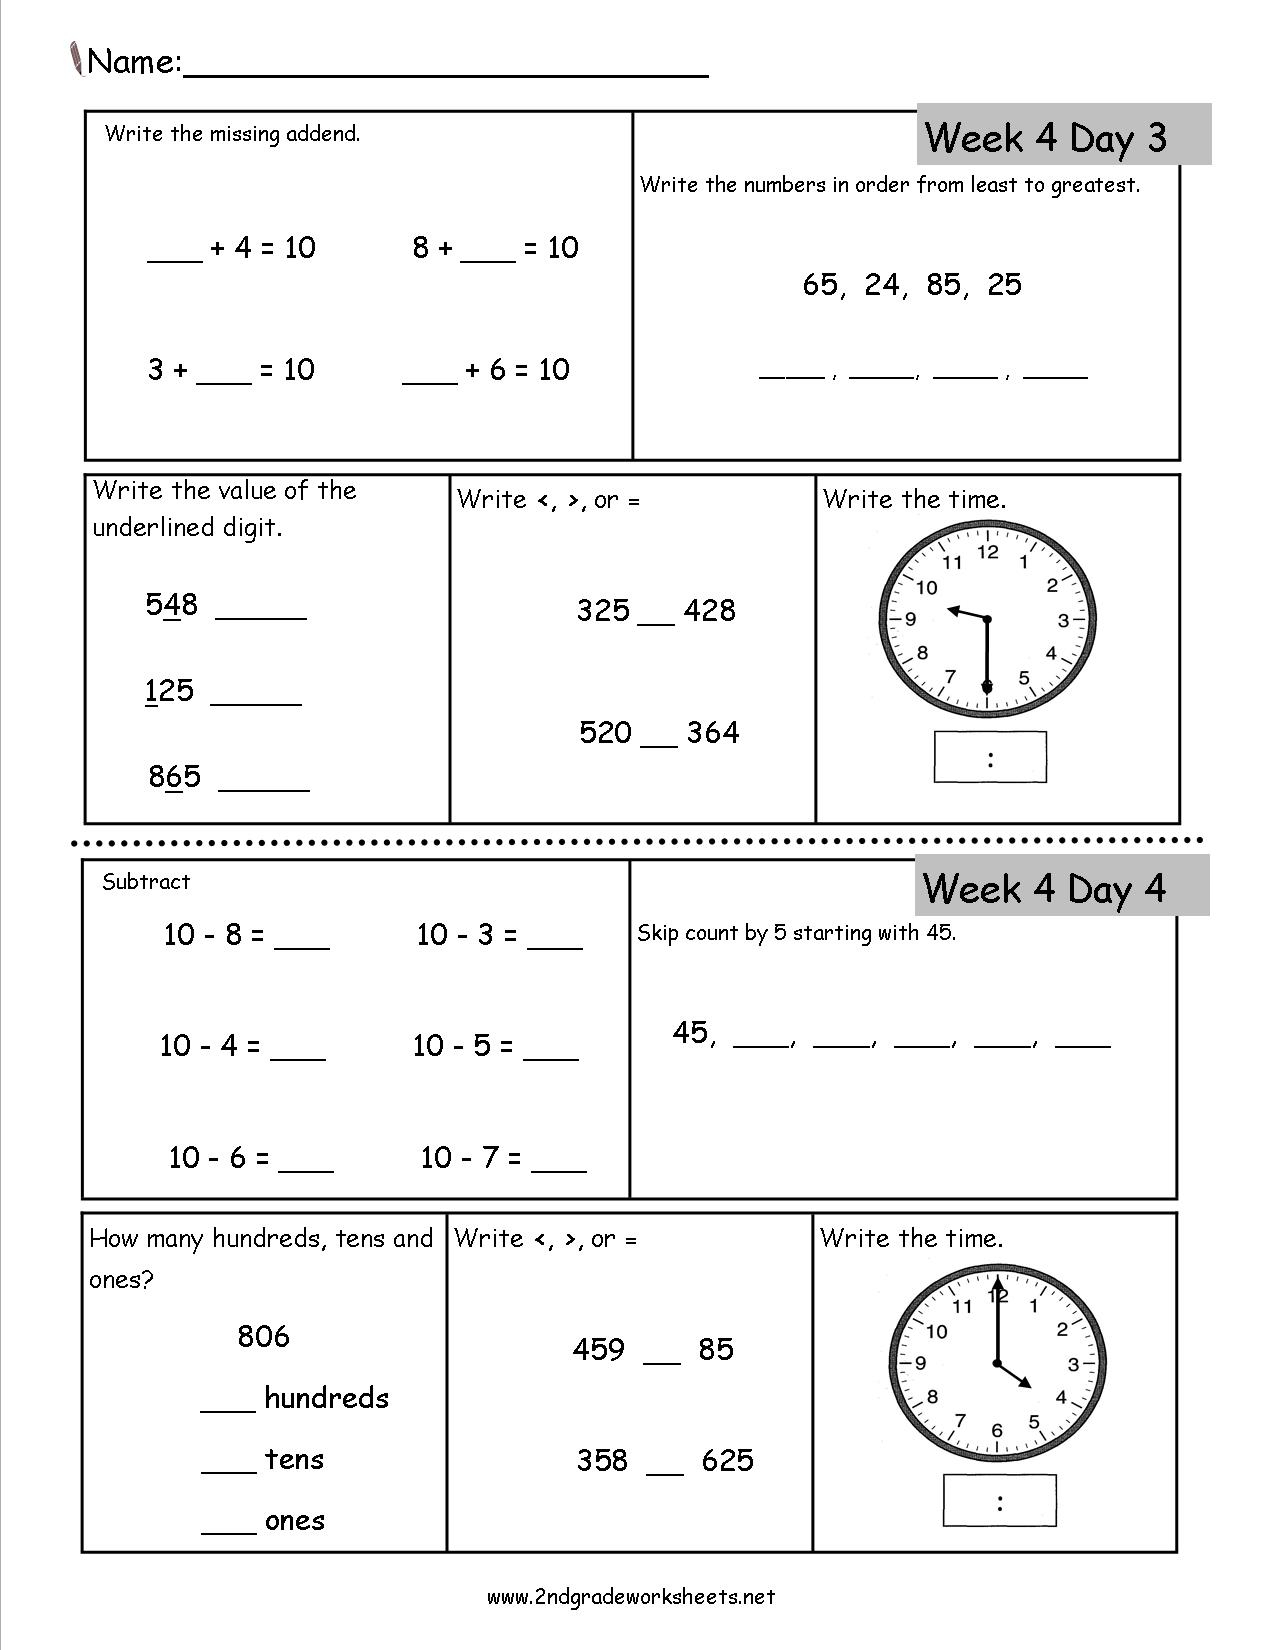 Free 2Nd Grade Daily Math Worksheets - Free Printable Activity Sheets For 2Nd Grade